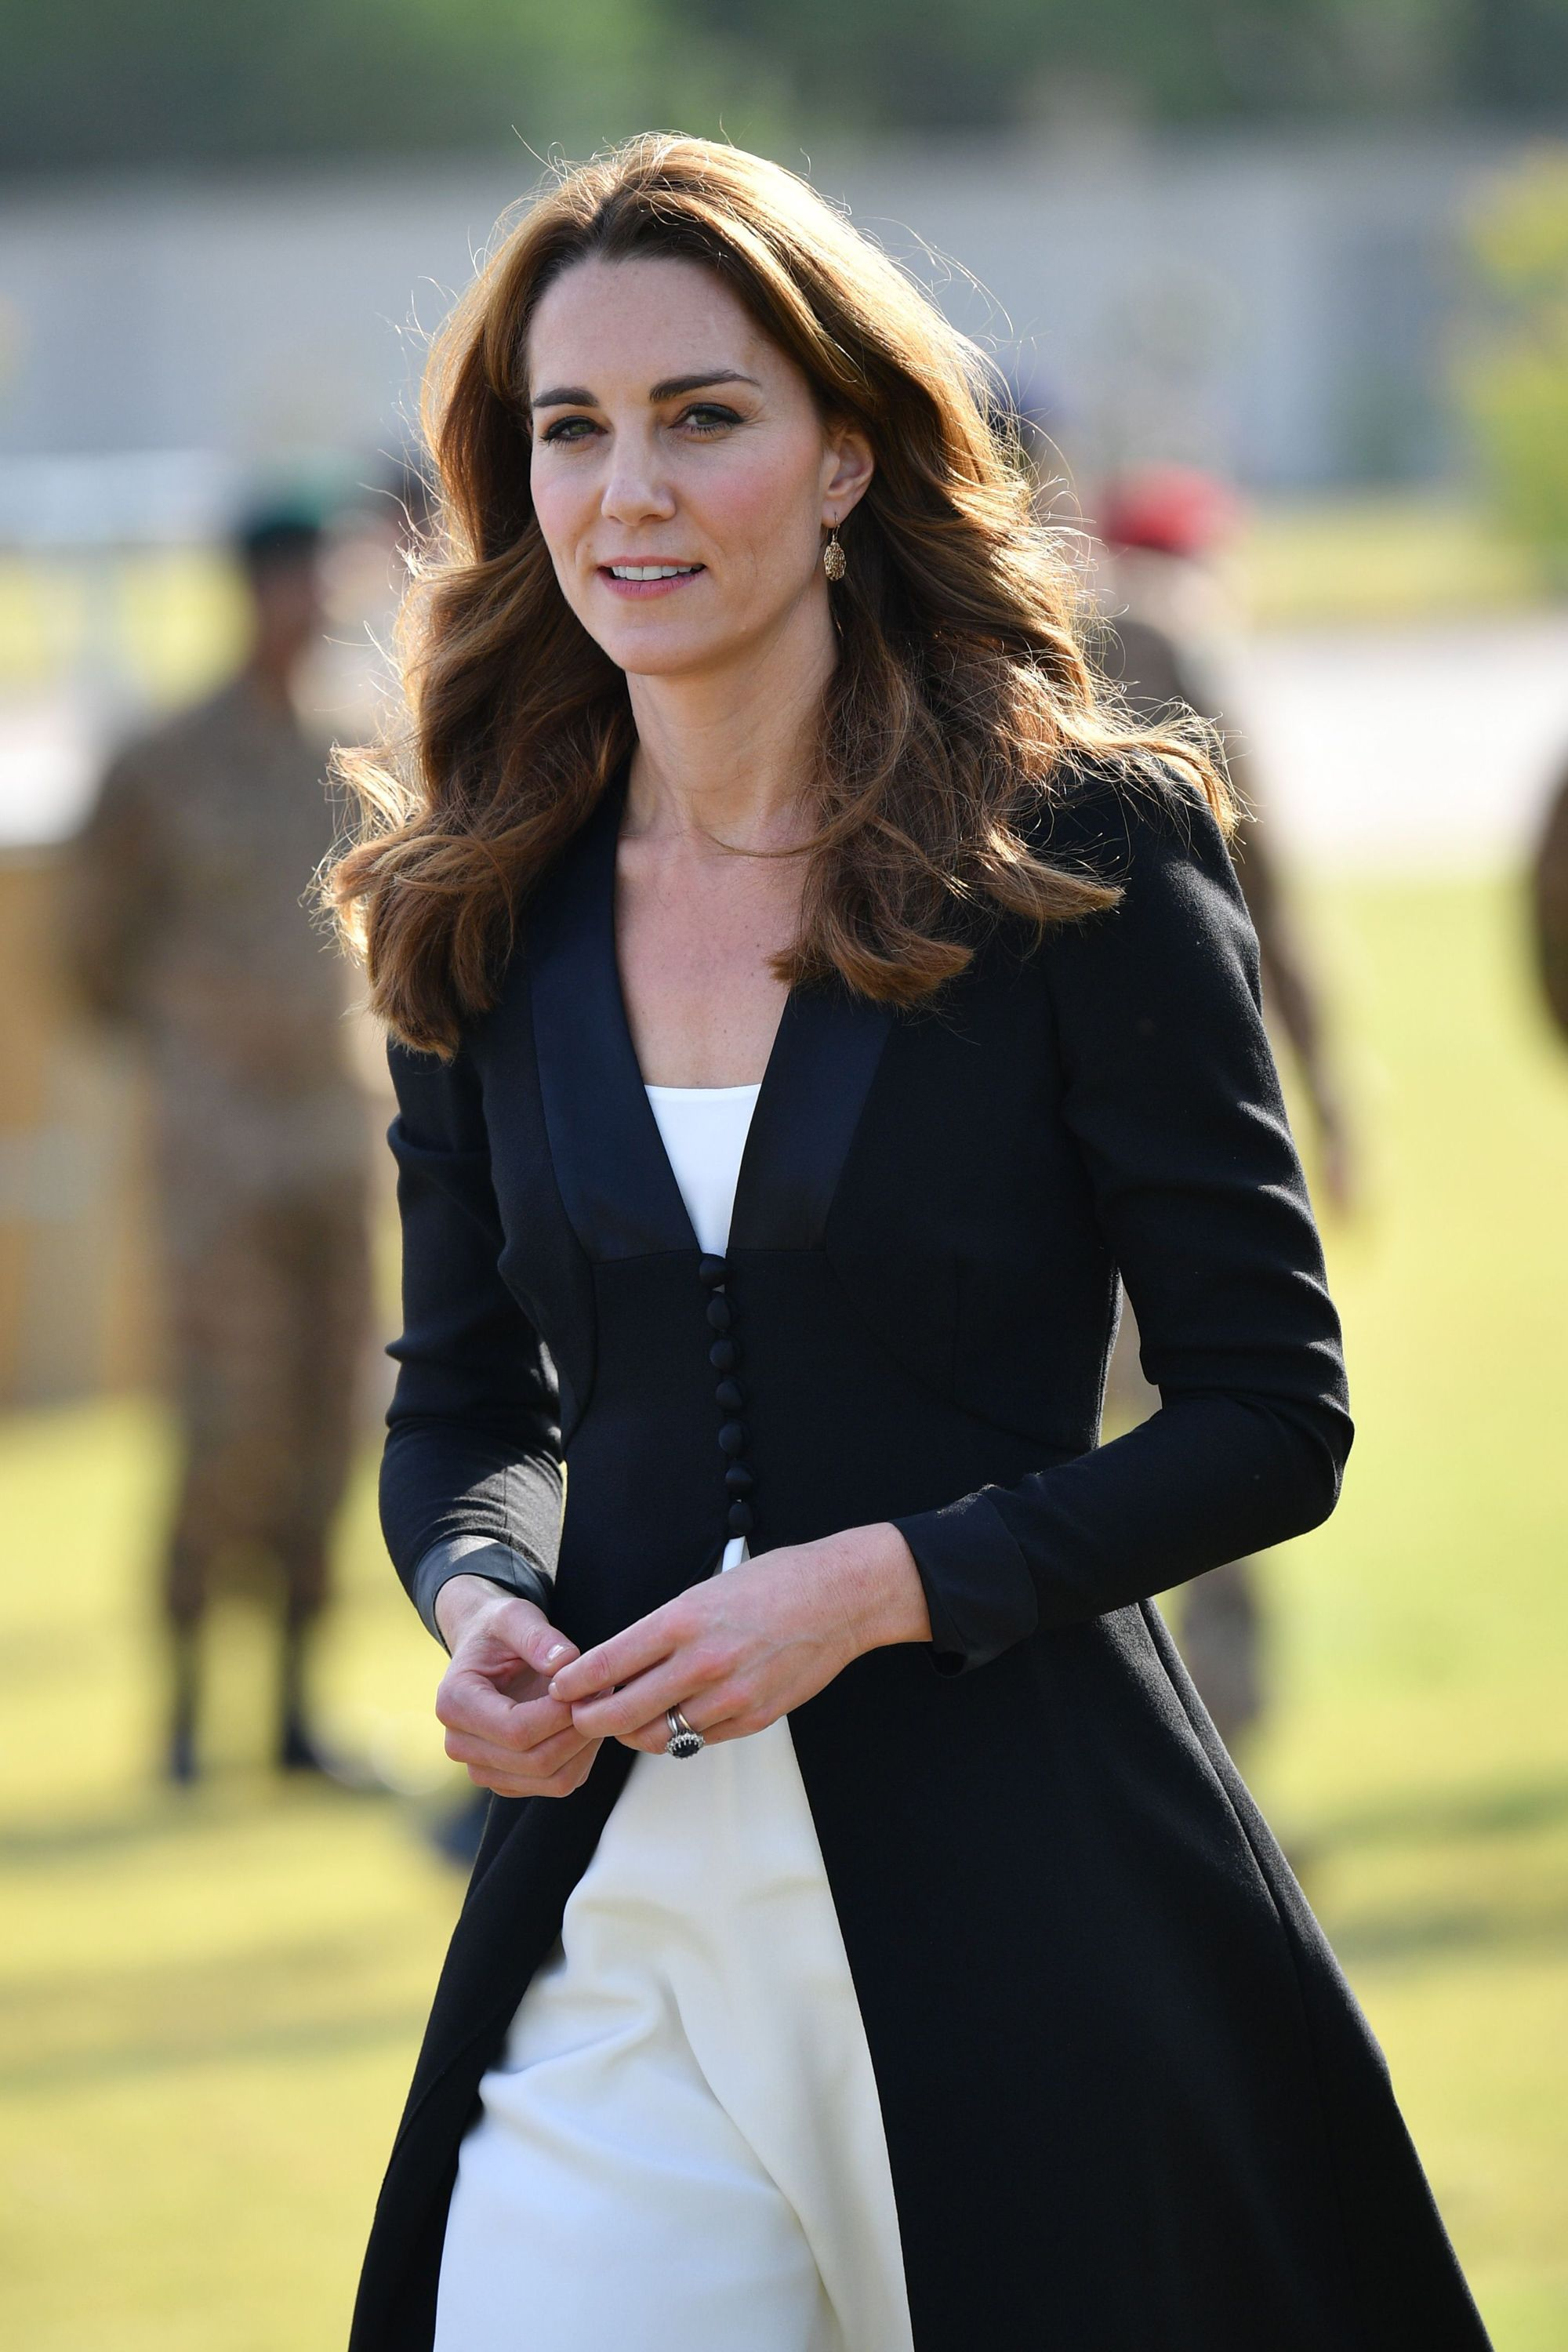 Kate Middleton Posts a Personal Instagram Message Following Royal Tour of Pakistan